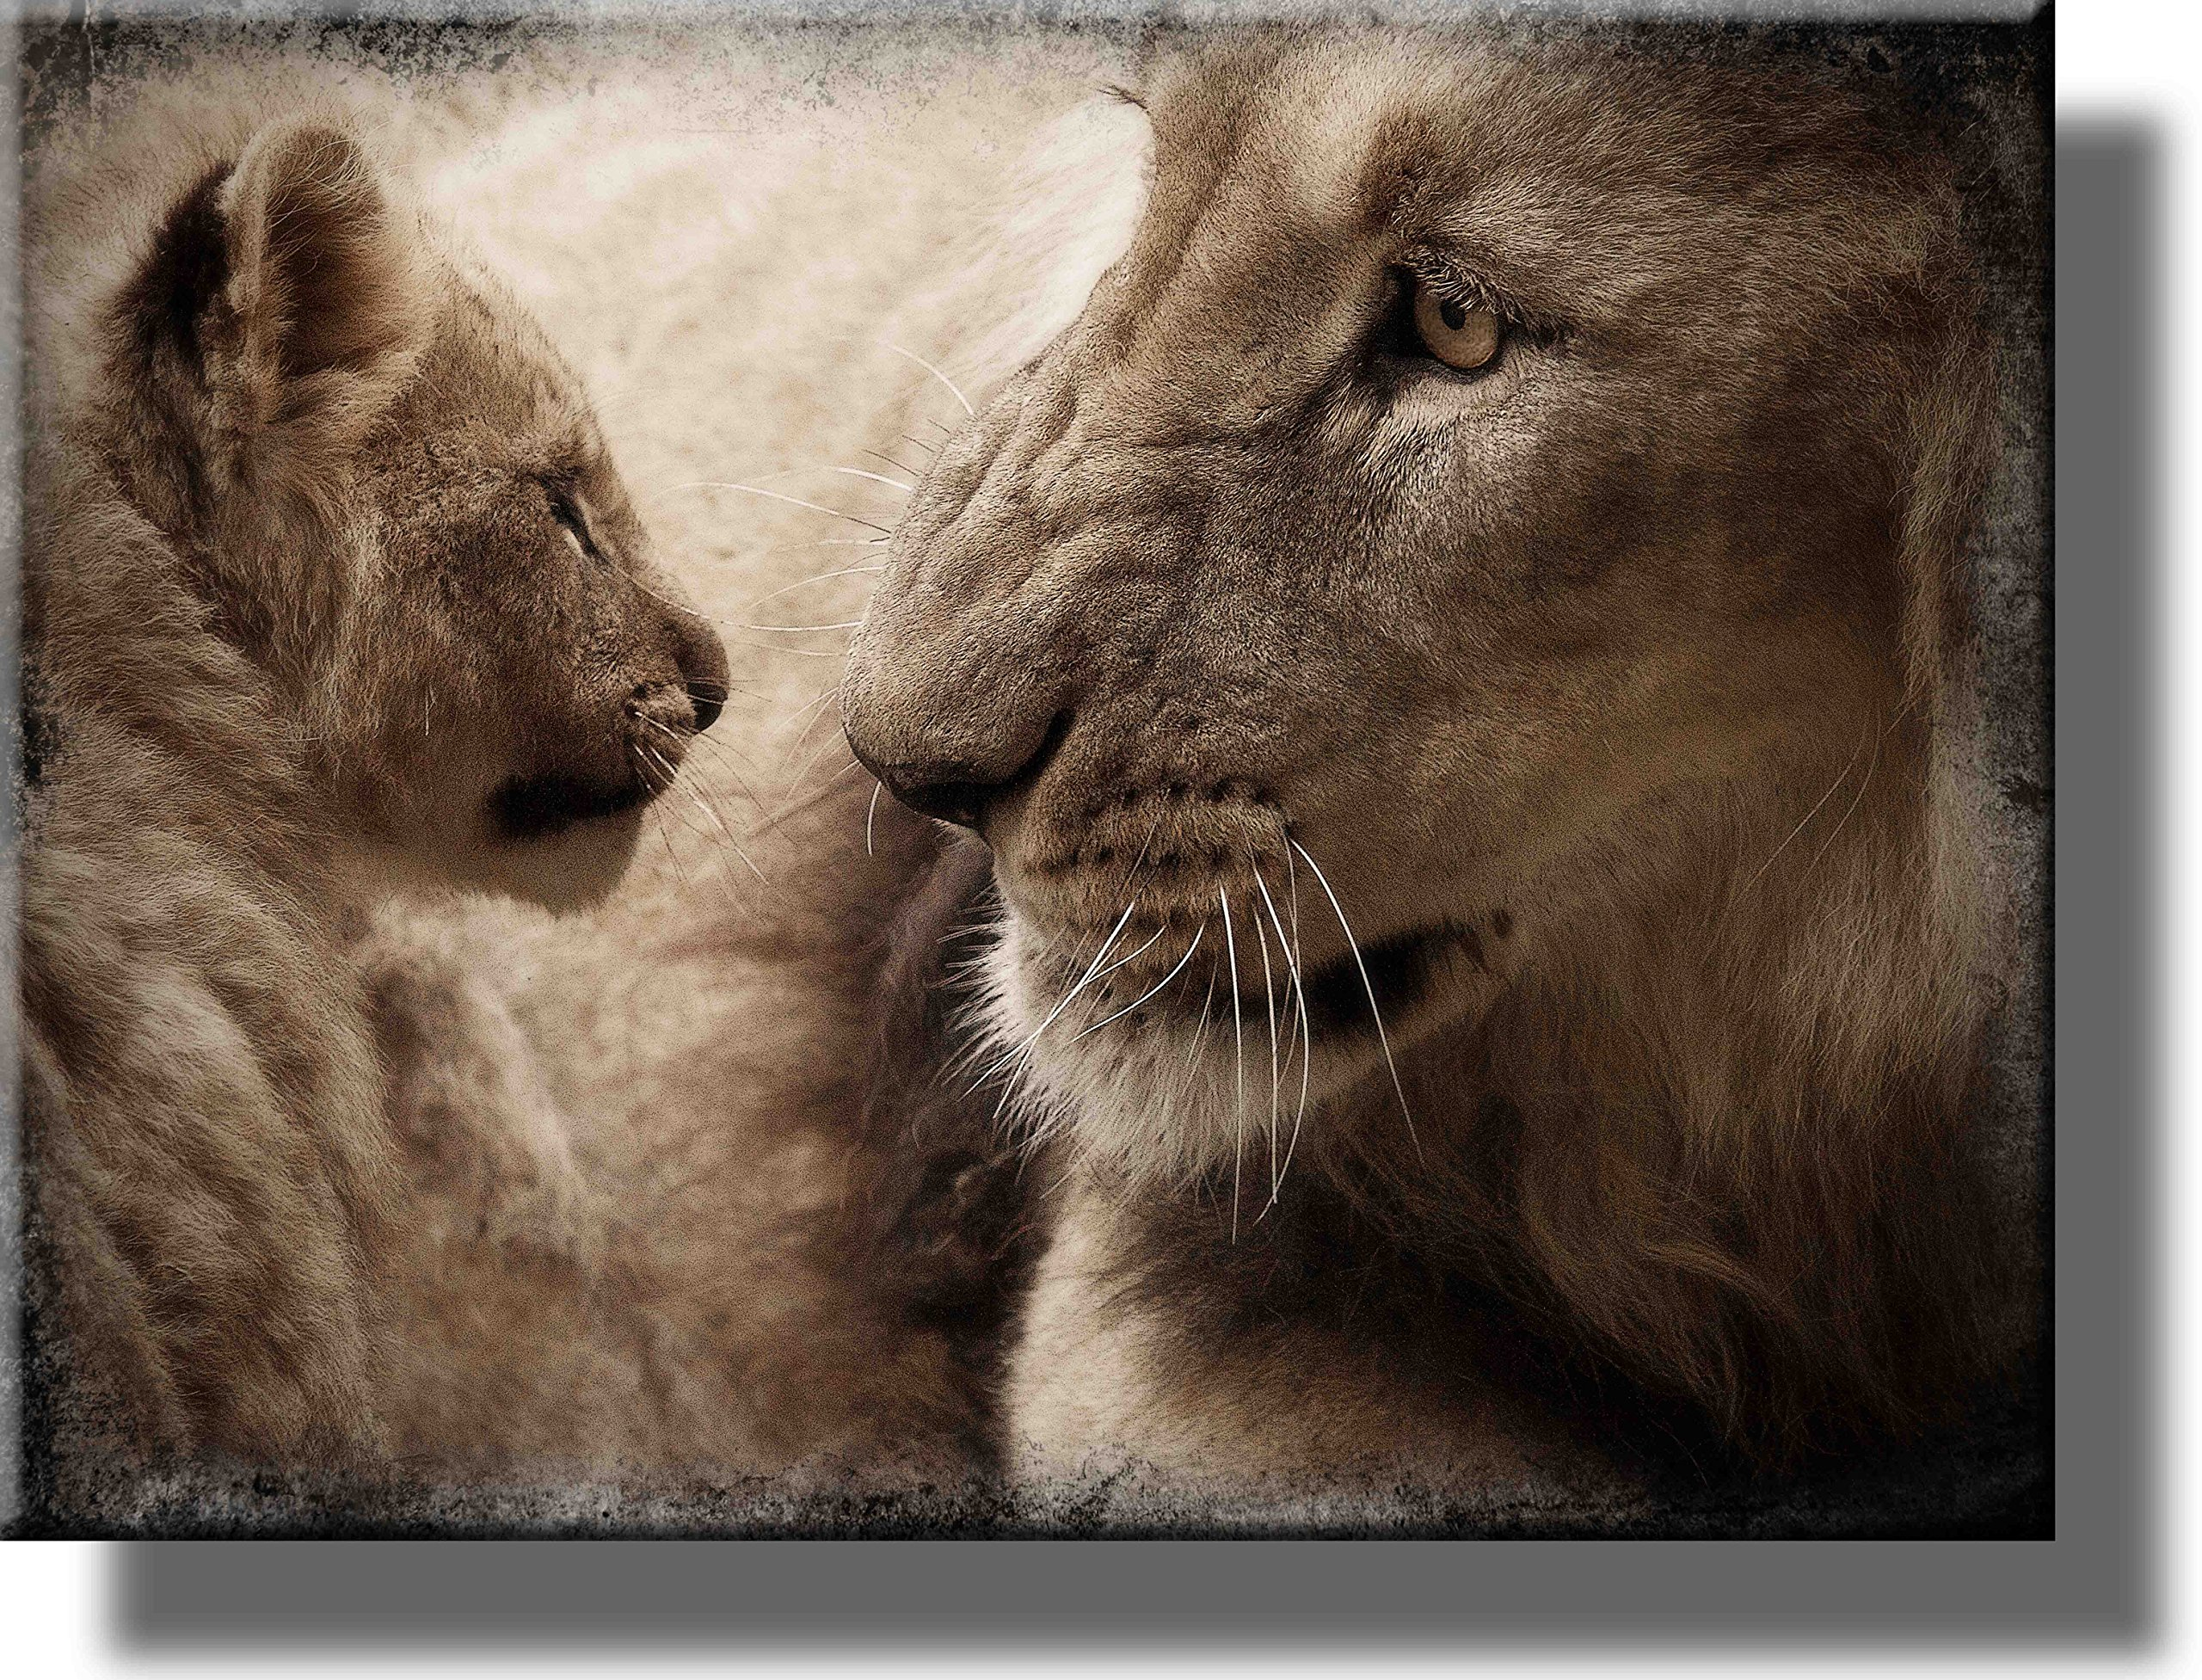 Lion and Cub Picture on Stretched Canvas, Wall Art Décor, Ready to Hang!